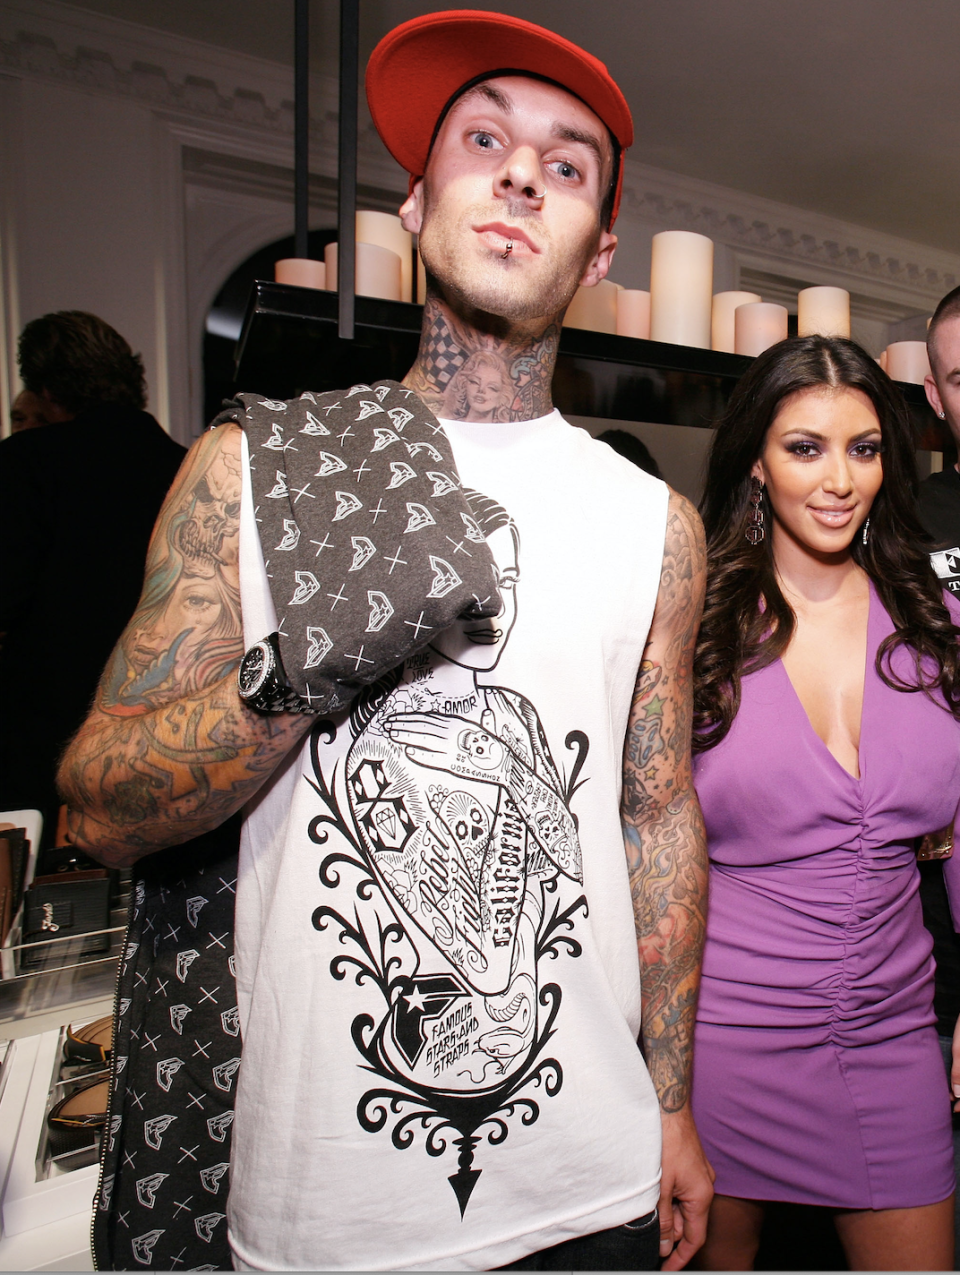 BEVERLY HILLS, CA - AUGUST 03: ***EXCLUSIVE*** Music recording artist Travis Barker (left), socialite Kim Kardashian (center left) and unidentified guests attend the LA Stars kick off event hosted by Baron Davis and Paul Pierce sponsored by FENDI at the Beverly Wilshire on August 3, 2007 in Beverly Hills, California. (Photo by Chris Weeks/WireImage)